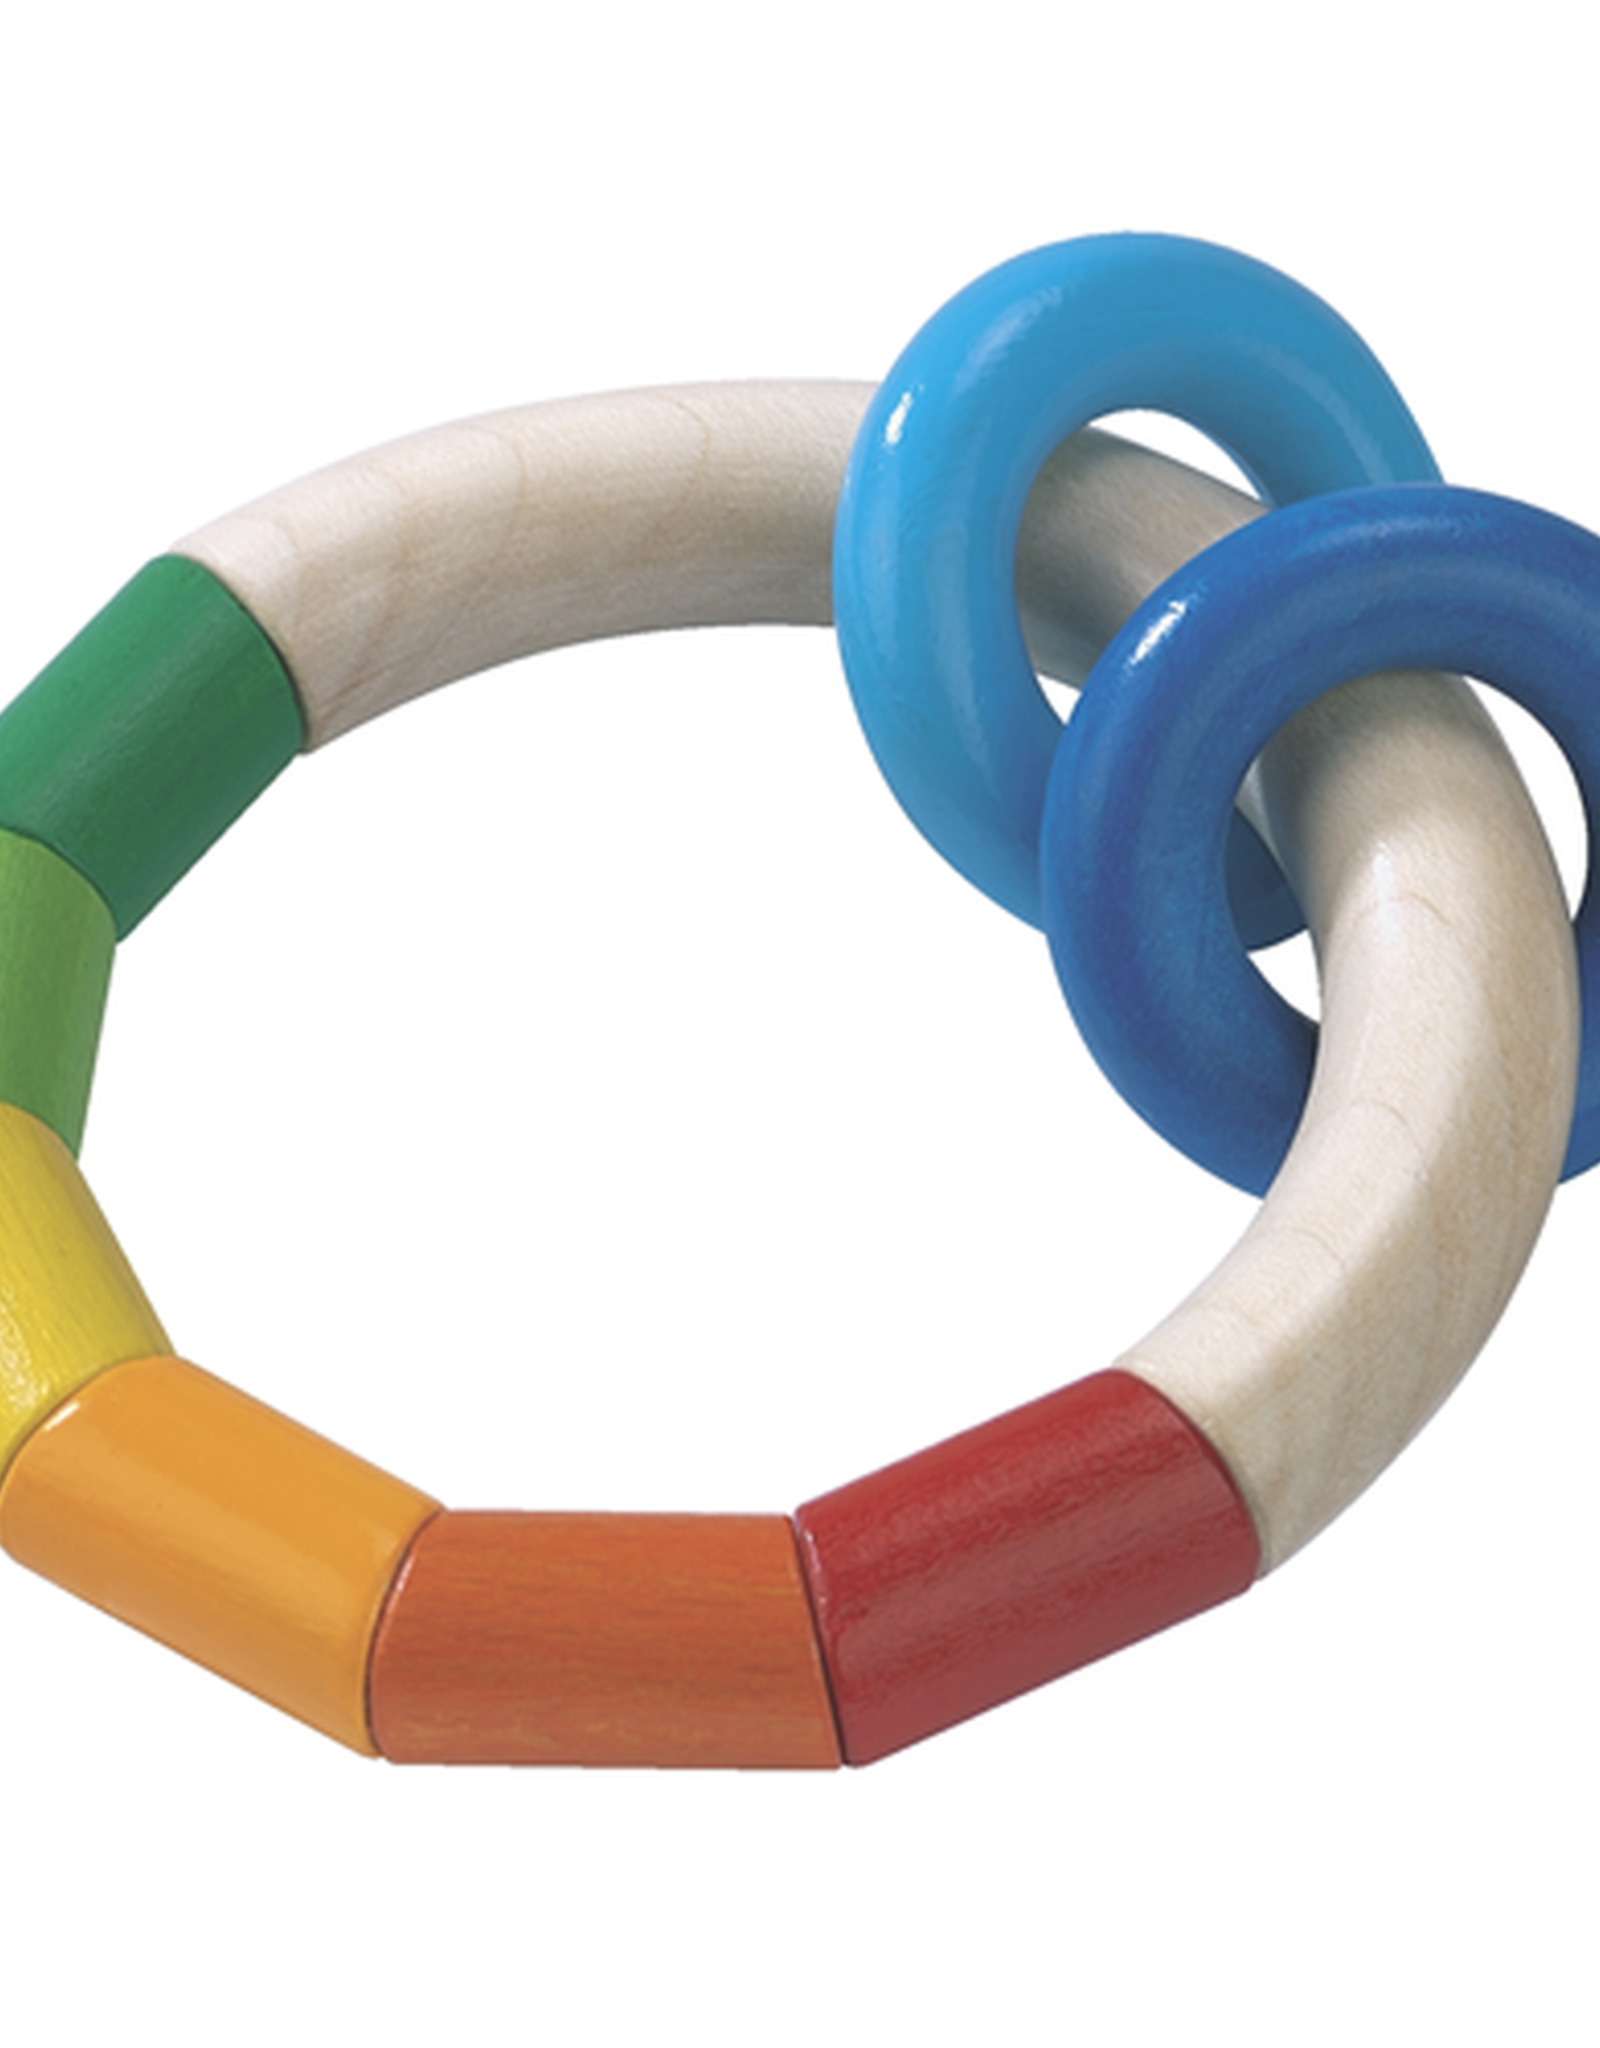 Haba Clutching Toy/Rattle Kringelring